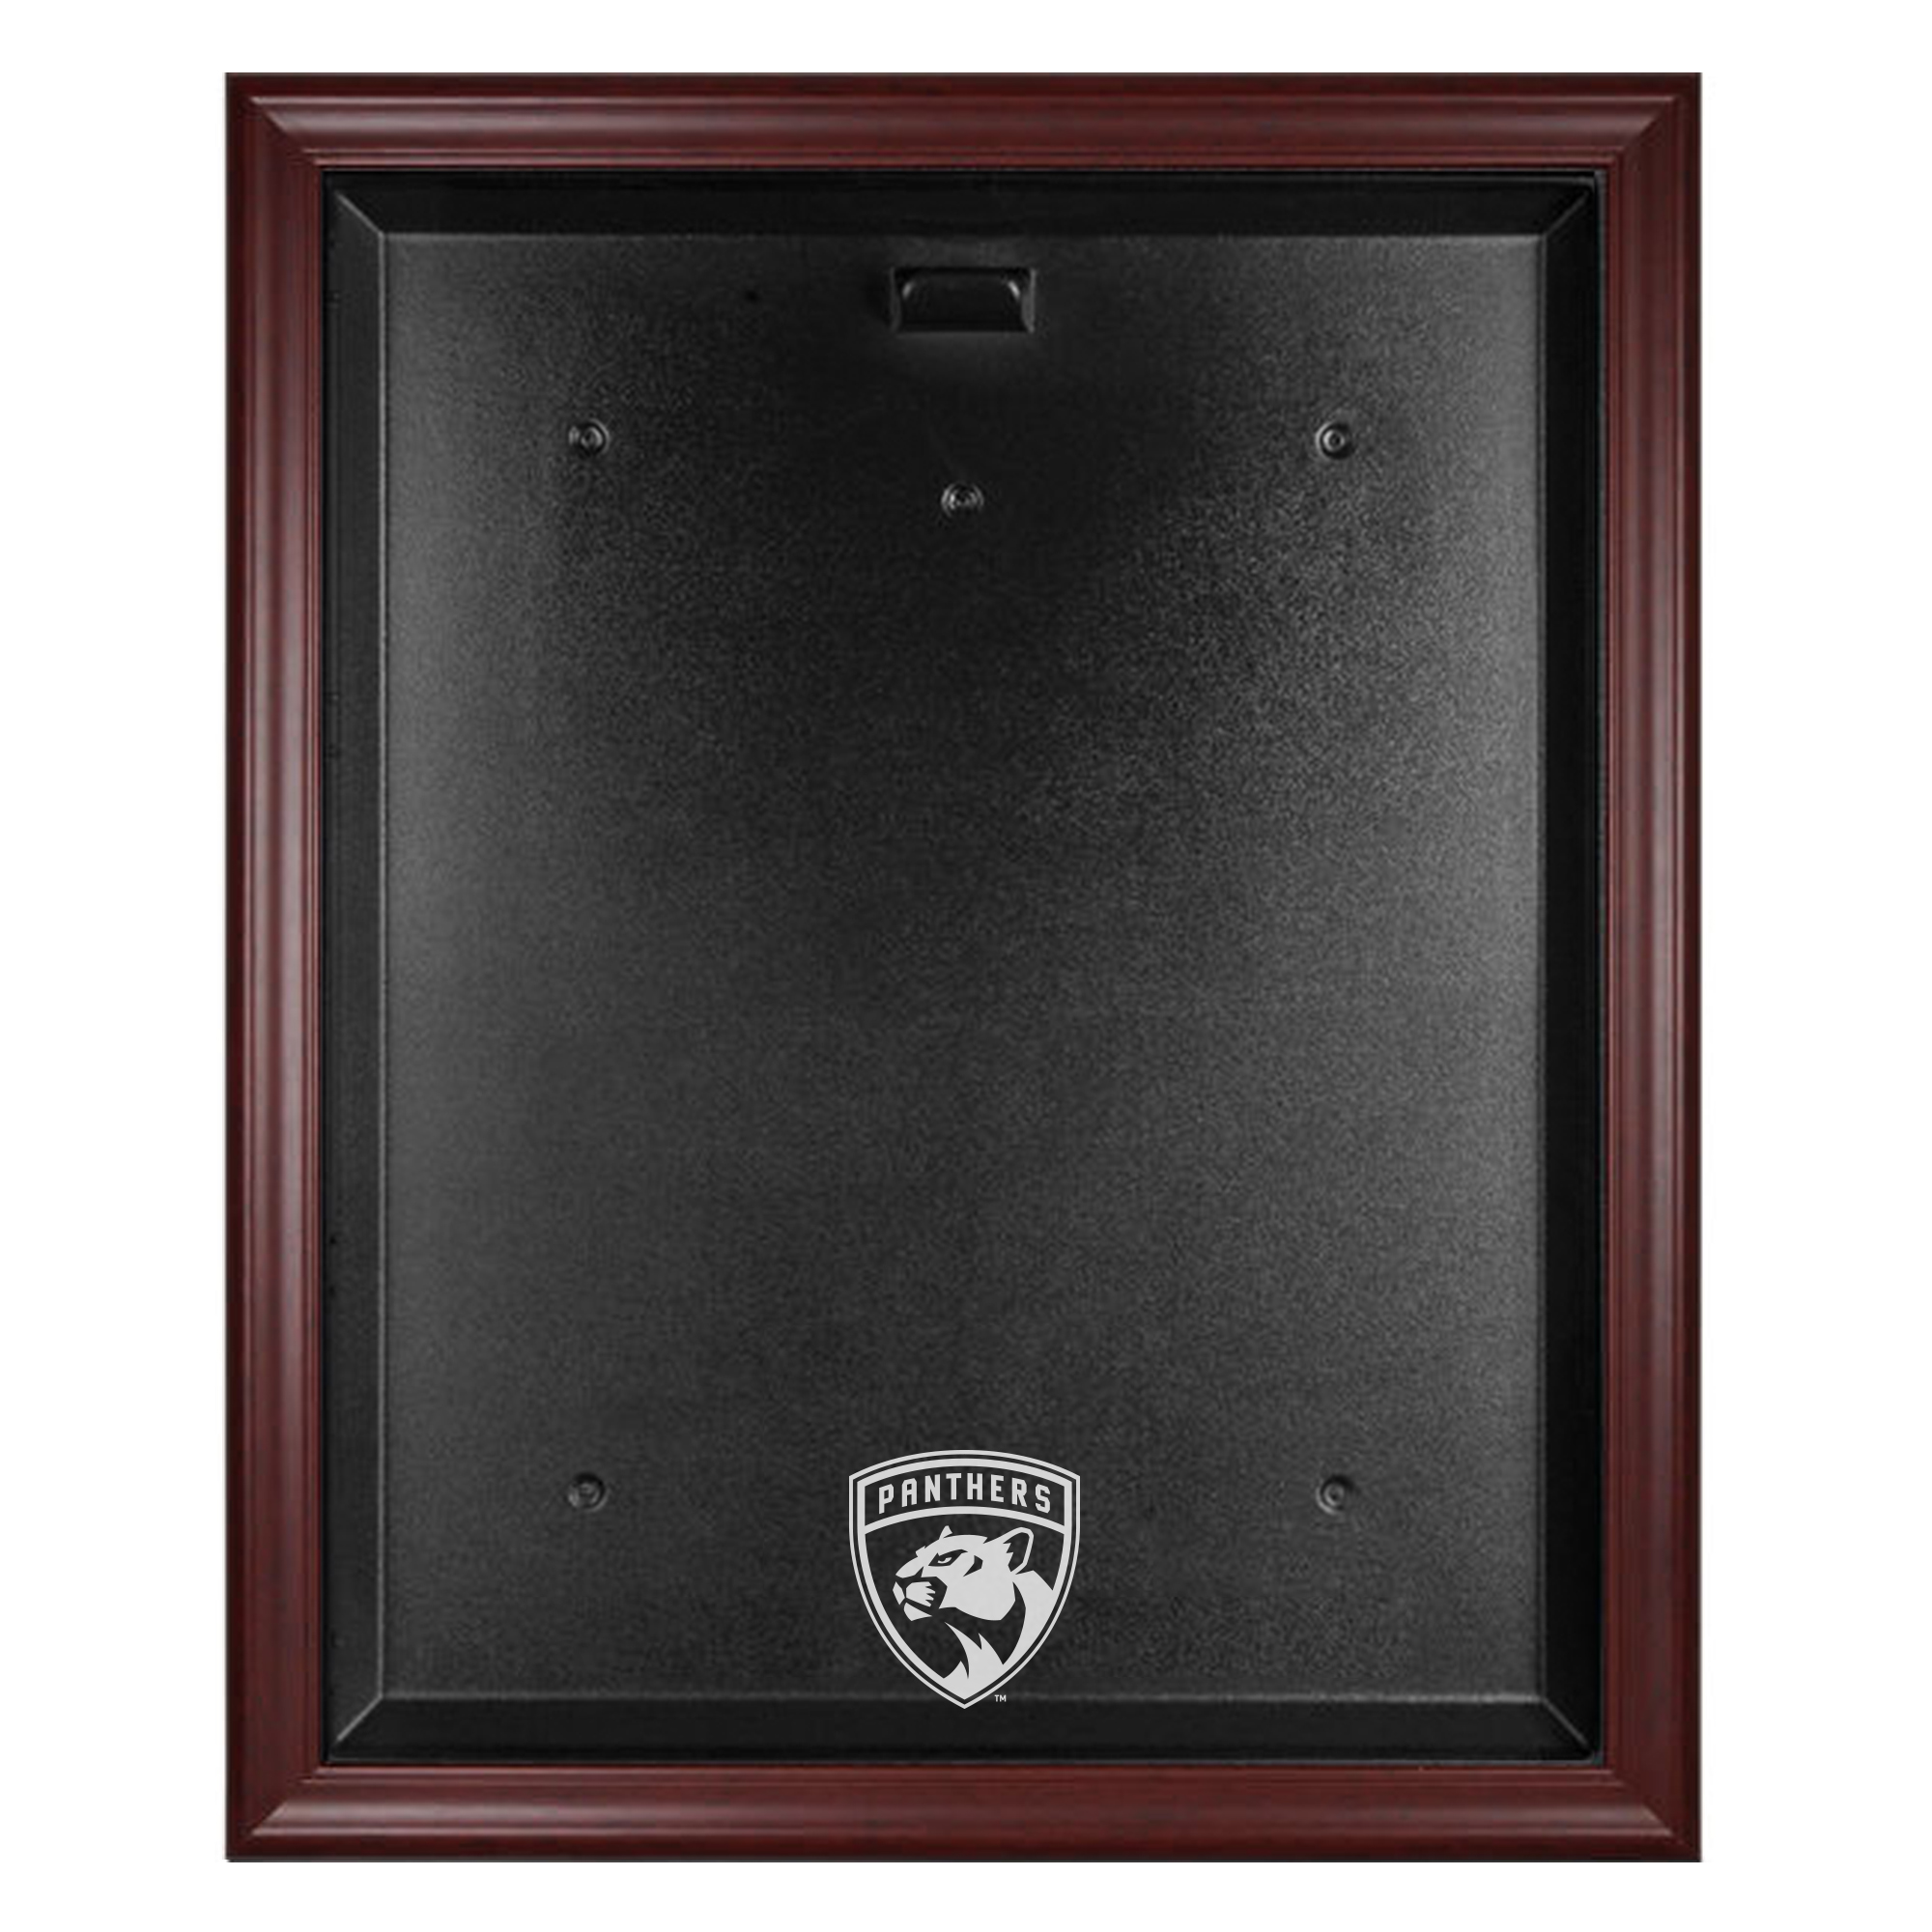 Florida Panthers Fanatics Authentic Mahogany Jersey Display Case - No Size